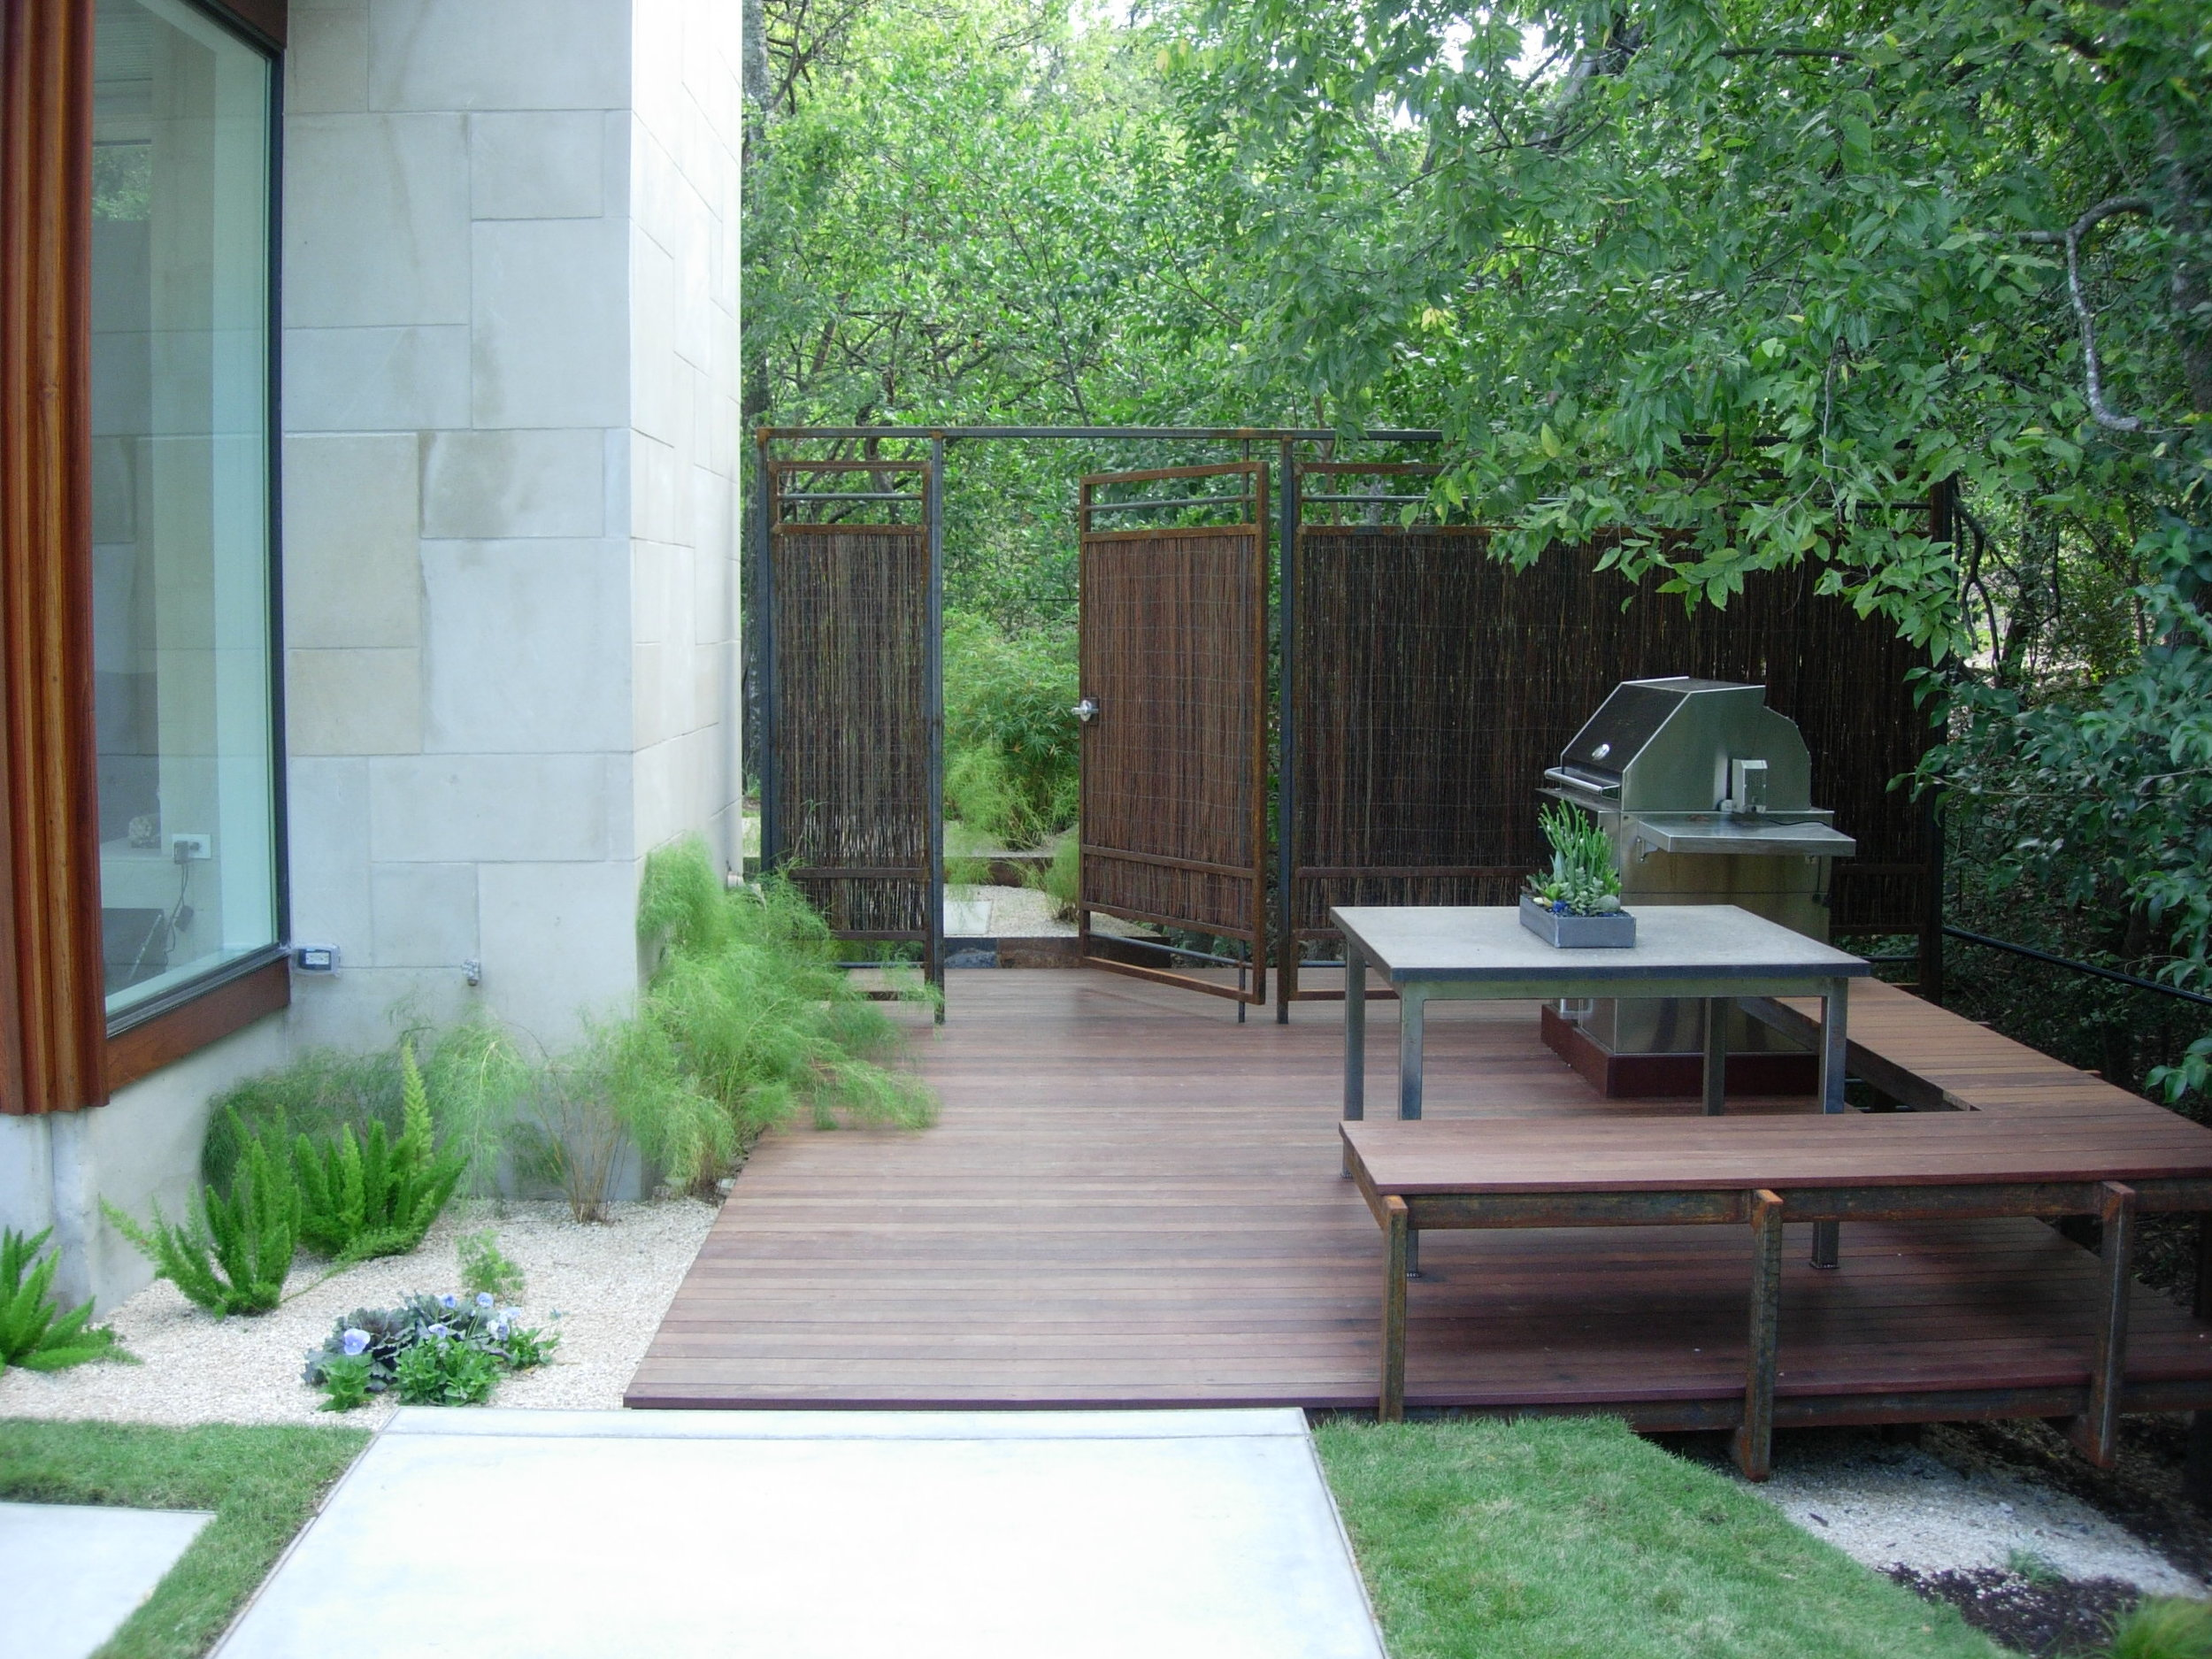 project-verde-vista-bbq-patio.jpg